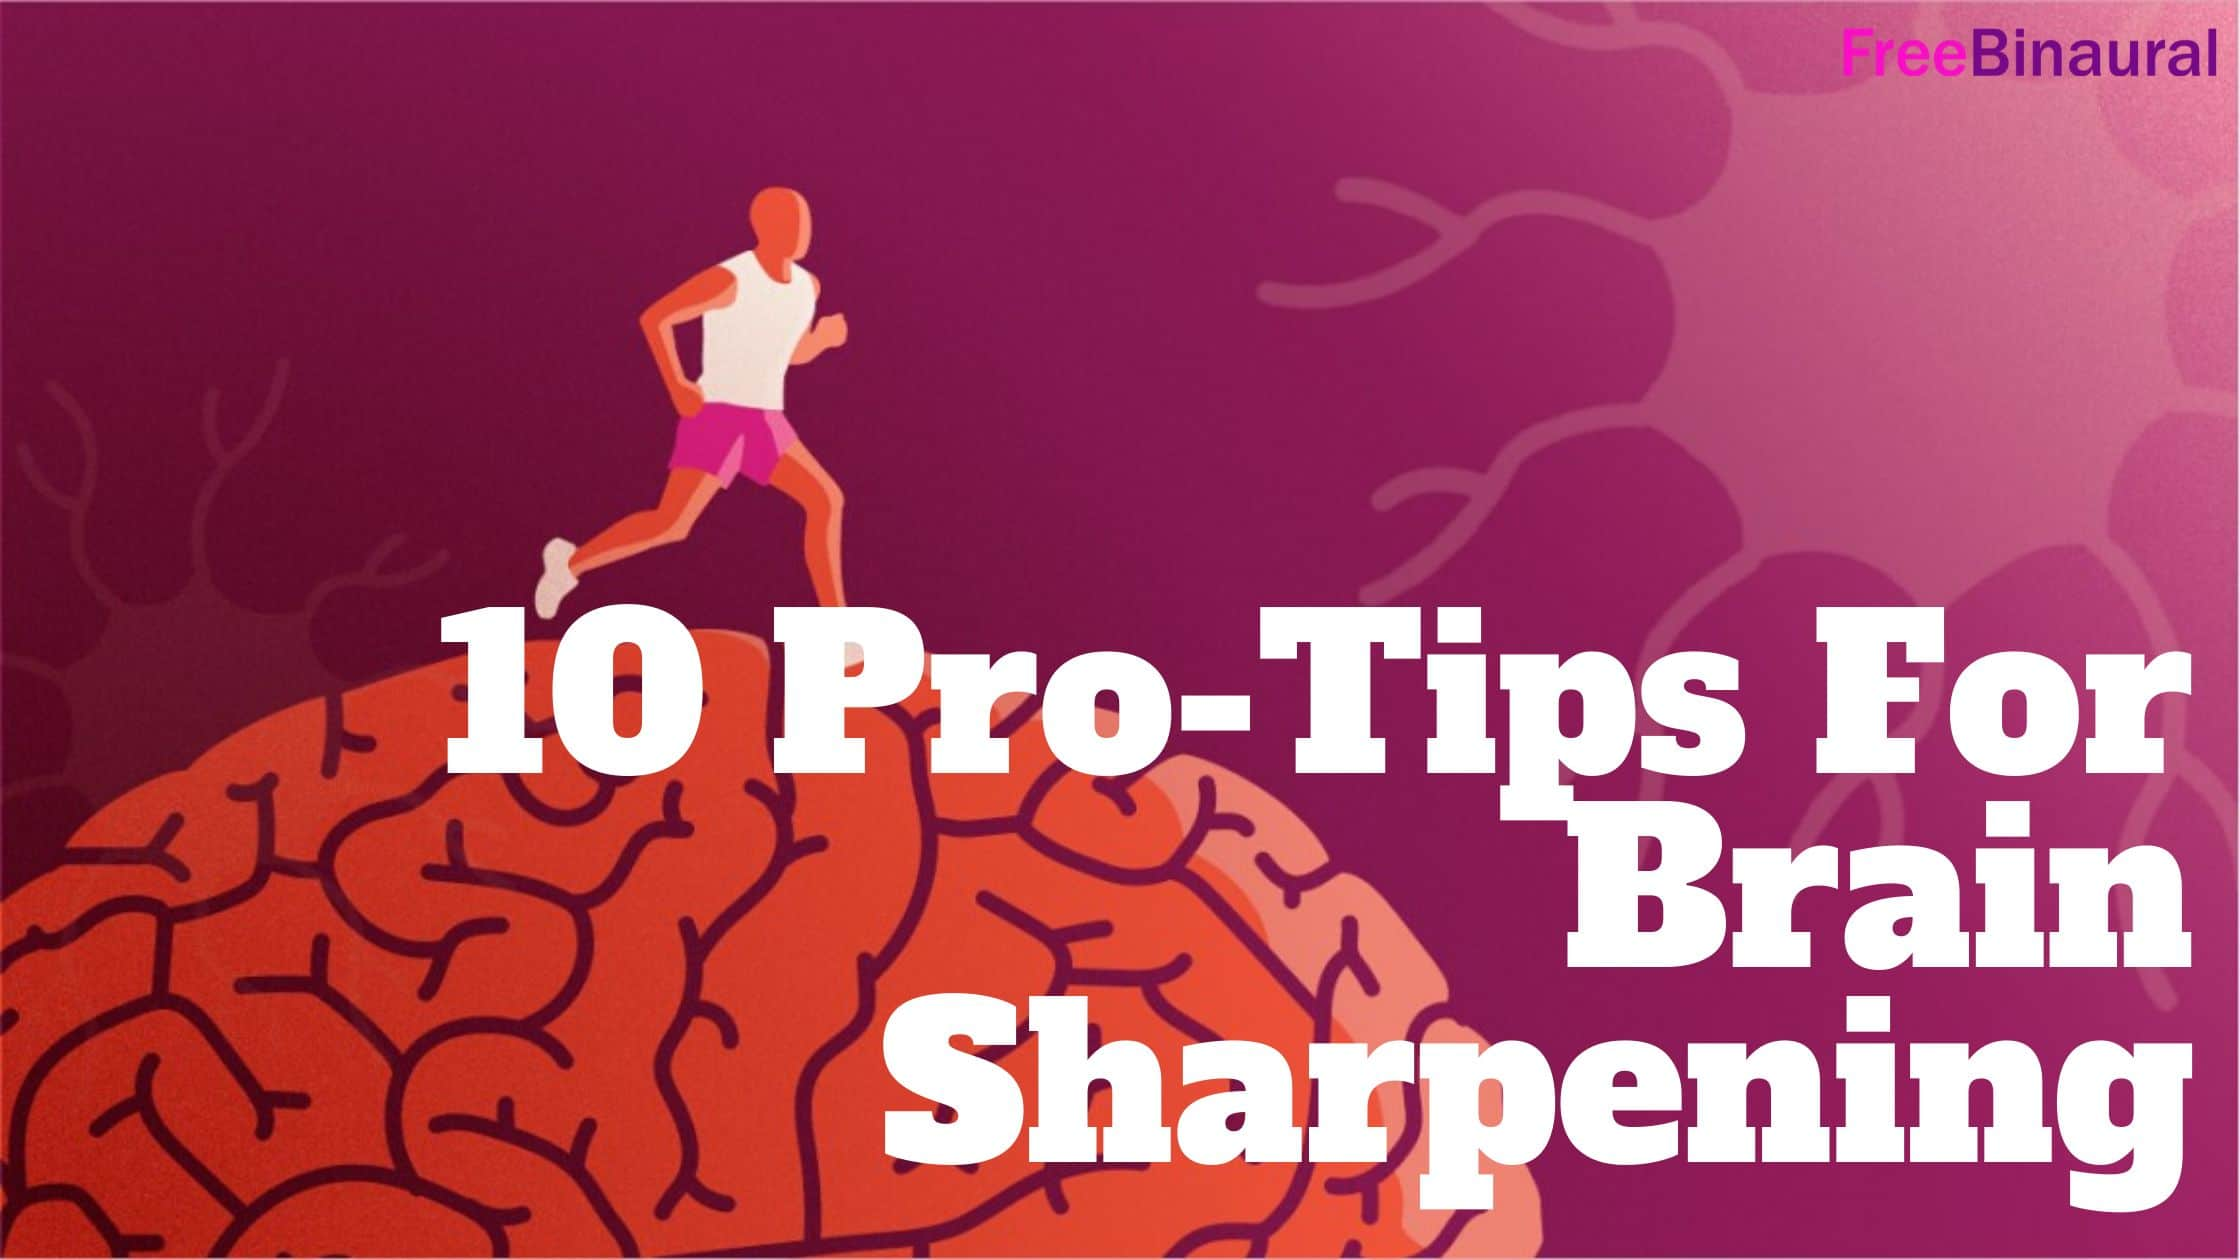 10-Pro-Tips-For-Brain-Performance